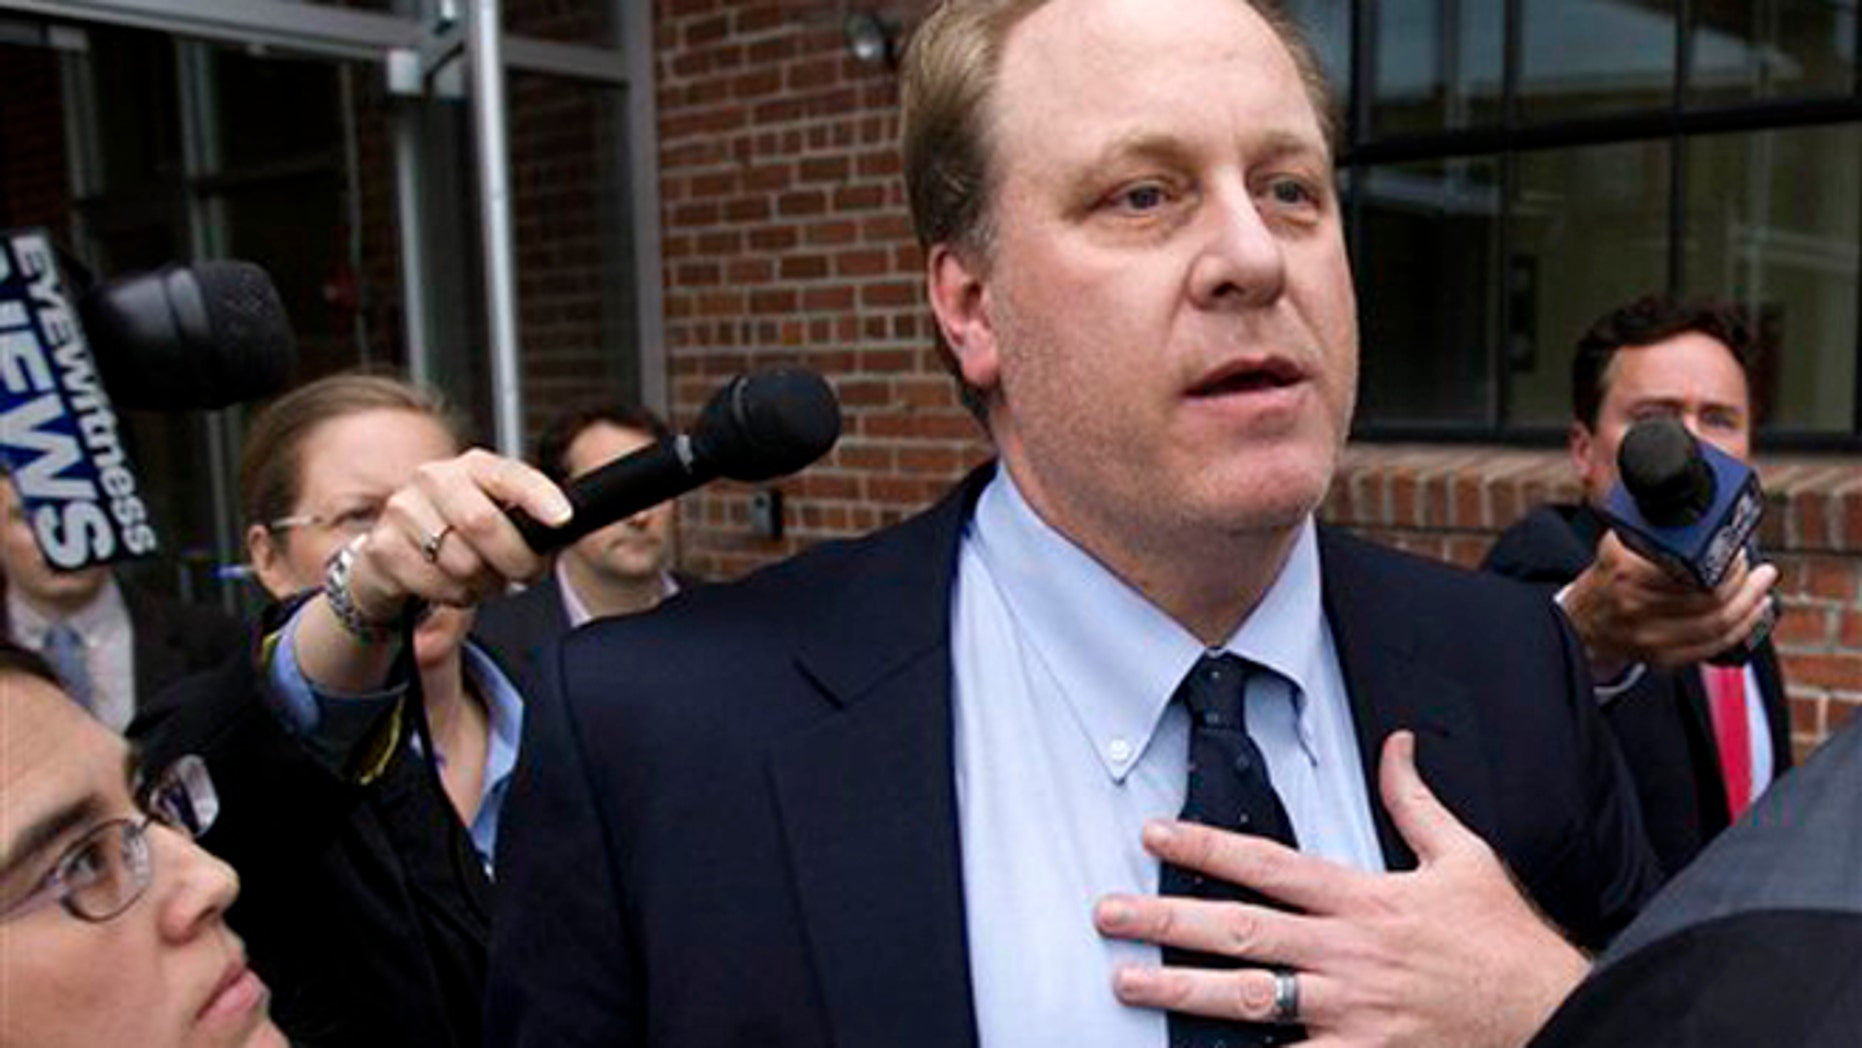 May 16, 2012: Former Boston Red Sox pitcher Curt Schilling, center, is followed by members of the media as he departs the Rhode Island Economic Development Corporation headquarters, in Providence, R.I.